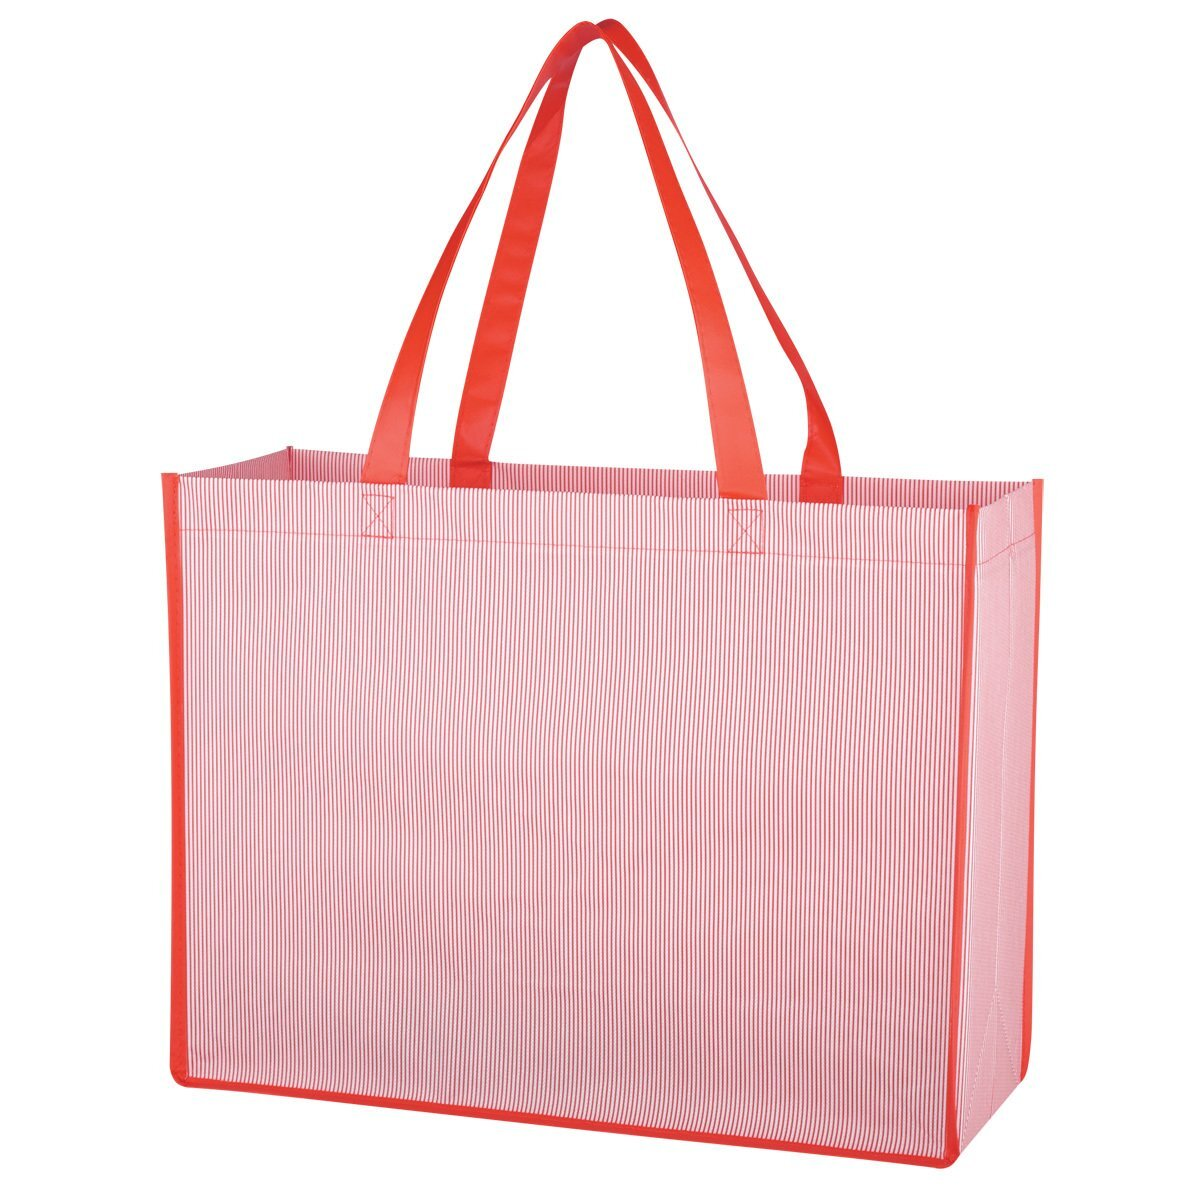 Bahama Matte Laminated Tote Bag